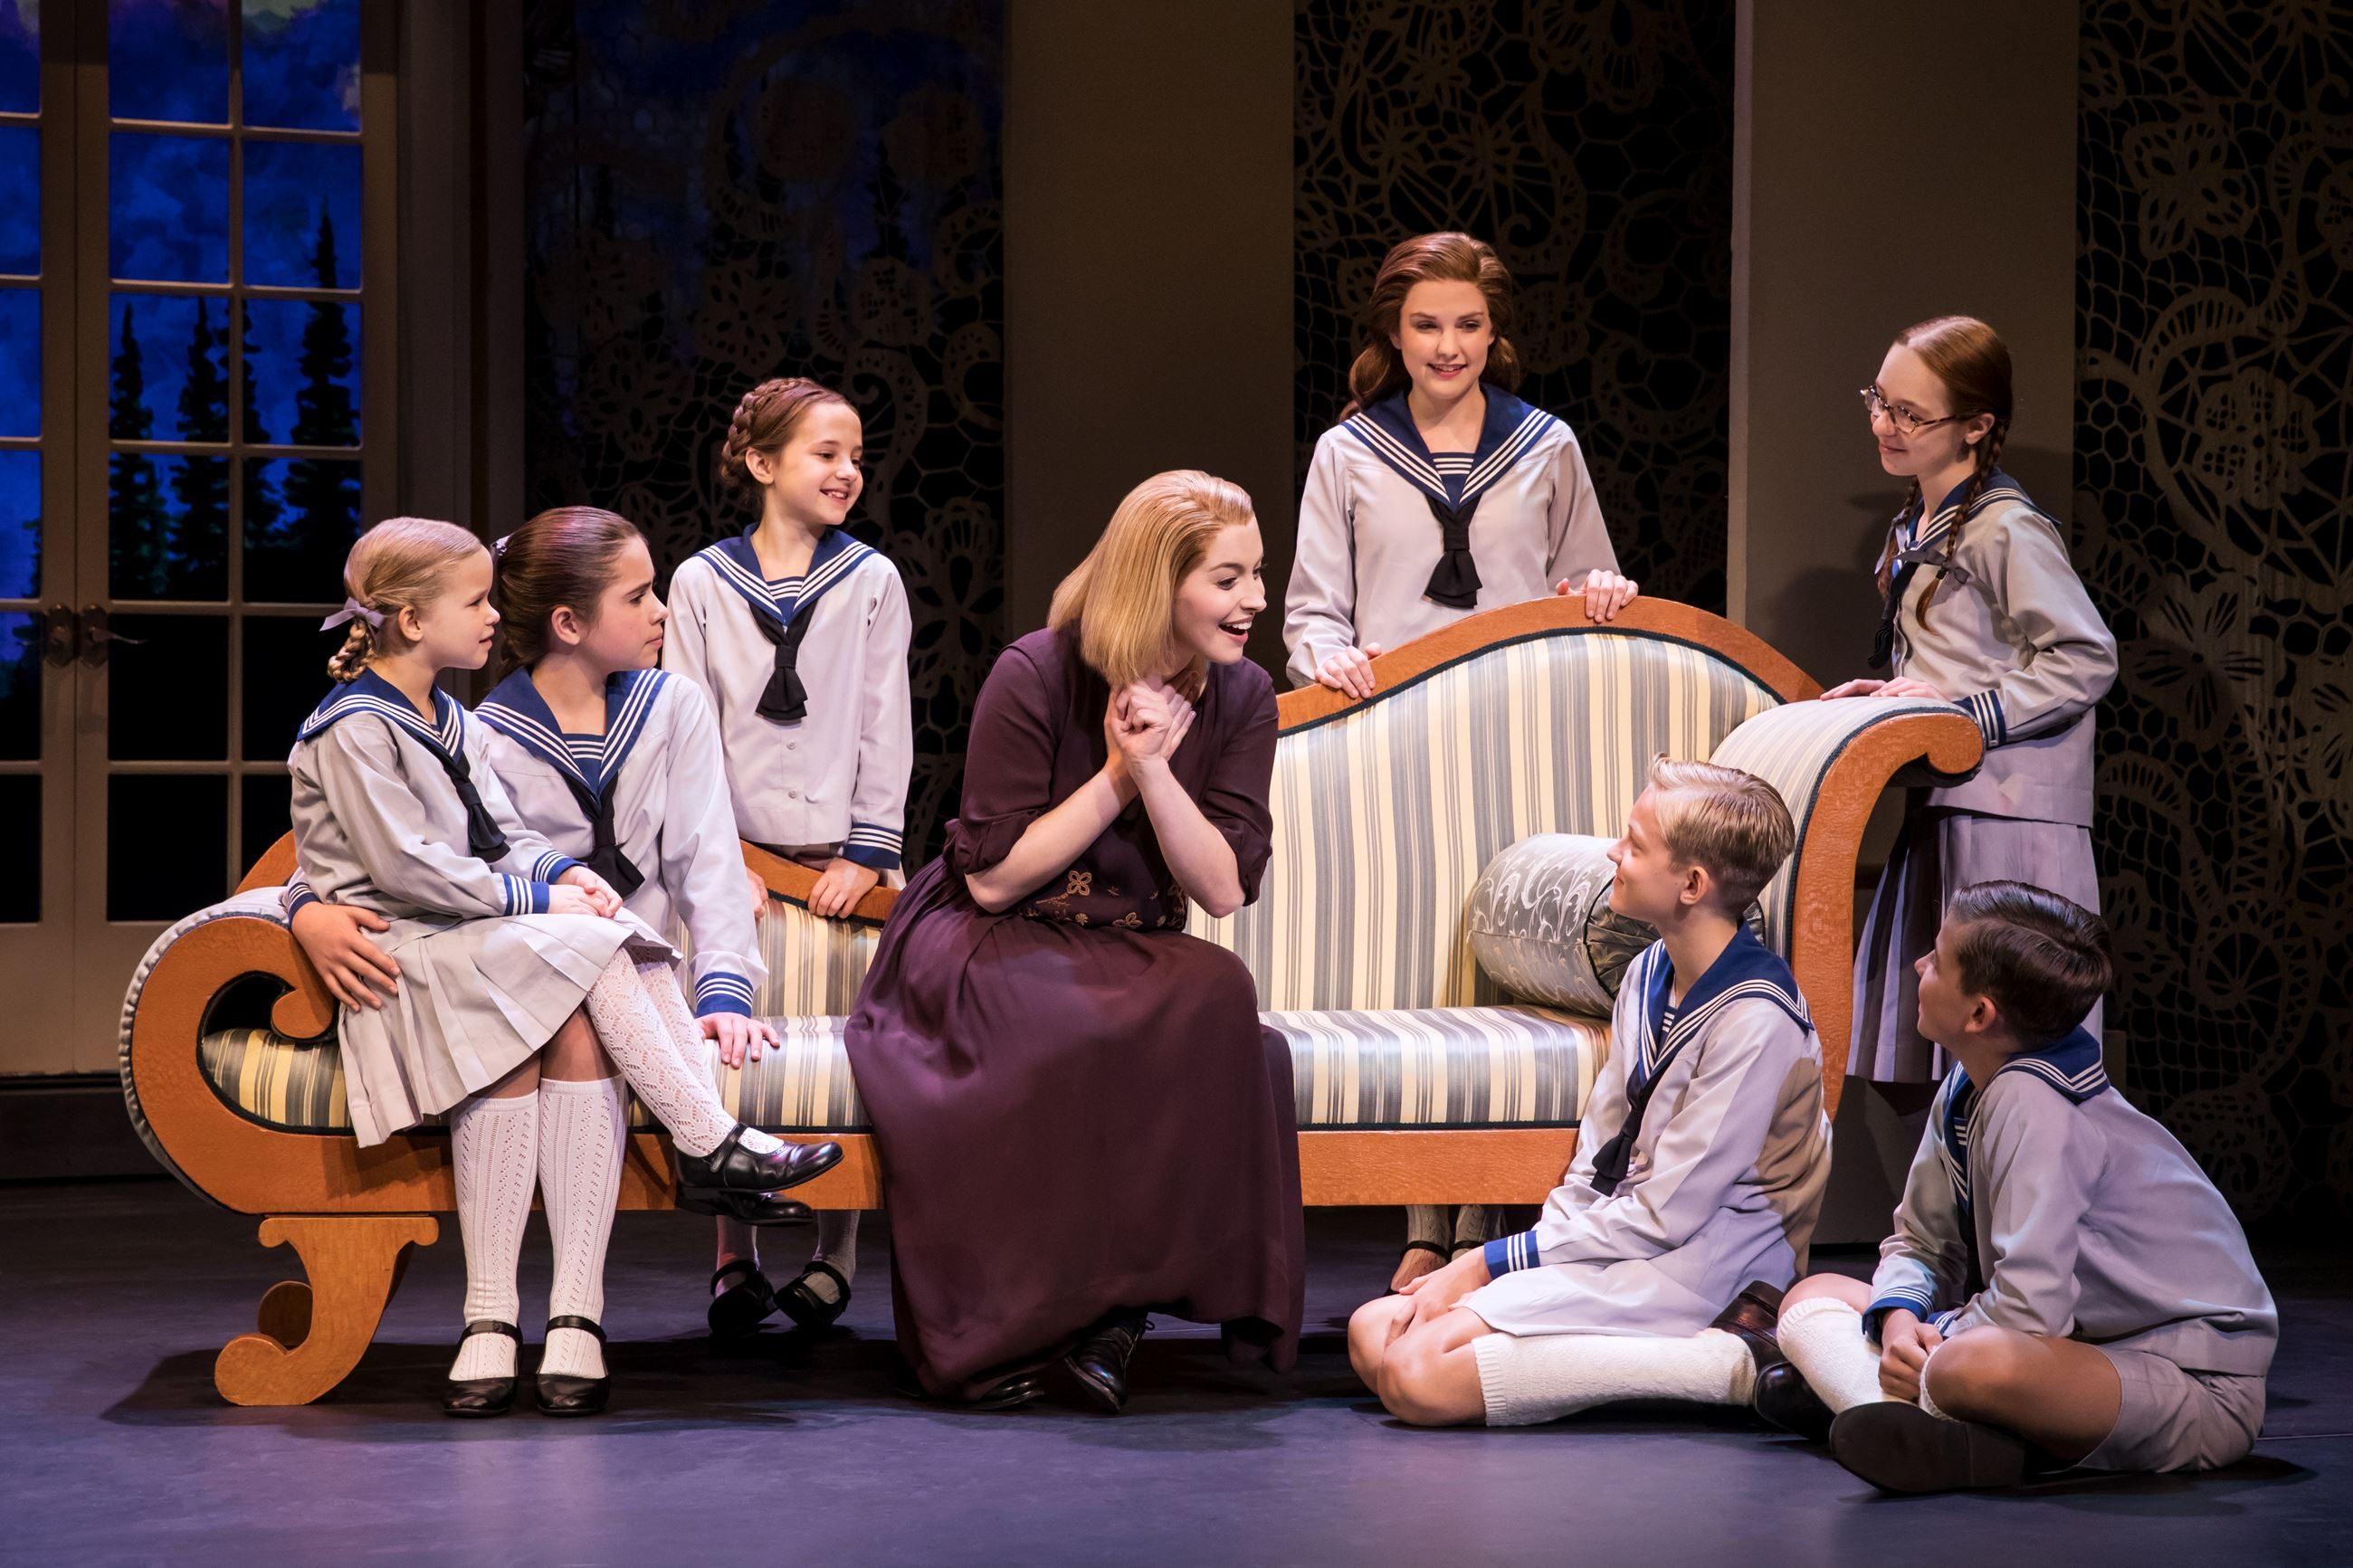 Jill-Christine Wiley as Maria Rainer and the von Trapp children. Photo by Matthew Murphy